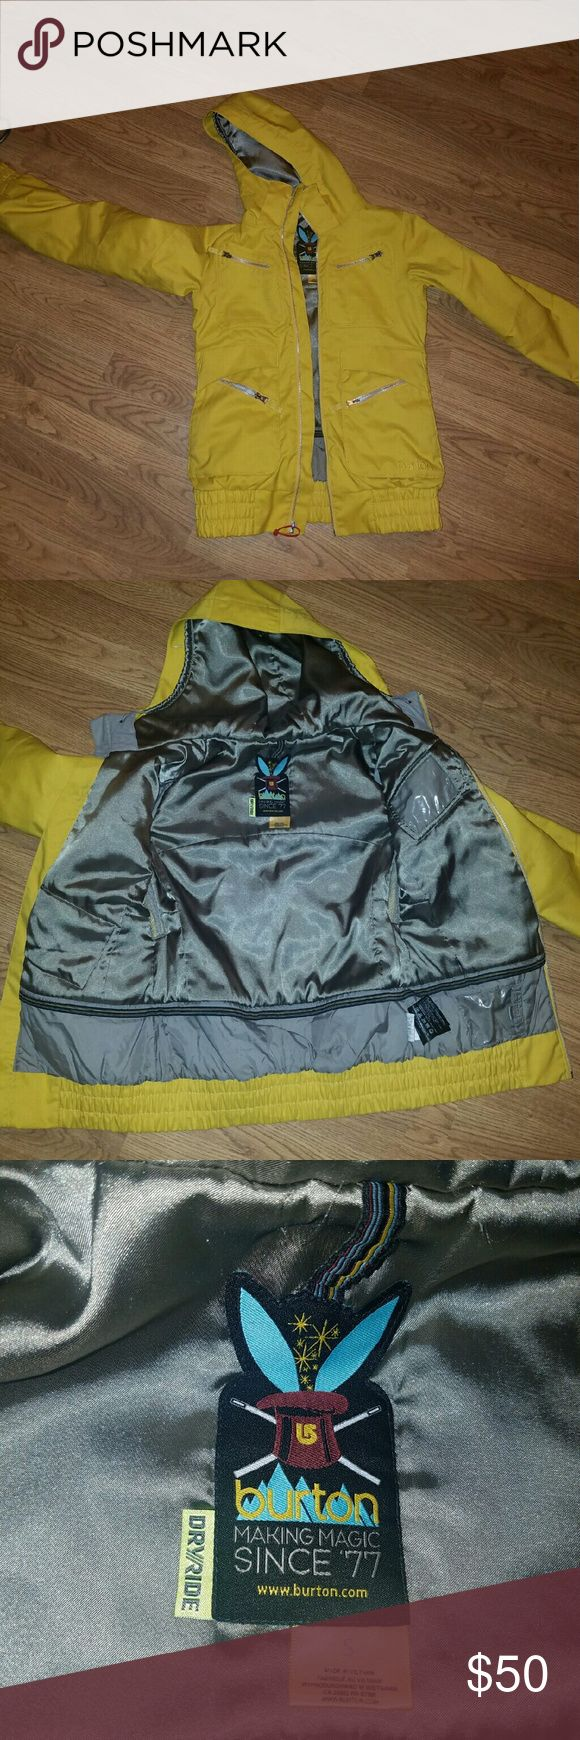 Burton dryride snowboard jacket Super cute yellow dryride snowboard jacket from burton. Size juniors  small. Pit vents, Inside pockets : goggle pocket, media pocket, pass pocket, ID pocket.  Outside pockets: small chest pockets and side pockets that both zip, and lined handwarmer pockets. The zipper pulley needs to be replaced (see photo #4). Great condition otherwise and yhays an easy fix. Also sadly it's missing the waist gaiter.  All reasonable offers will be considered. Burton Jackets…